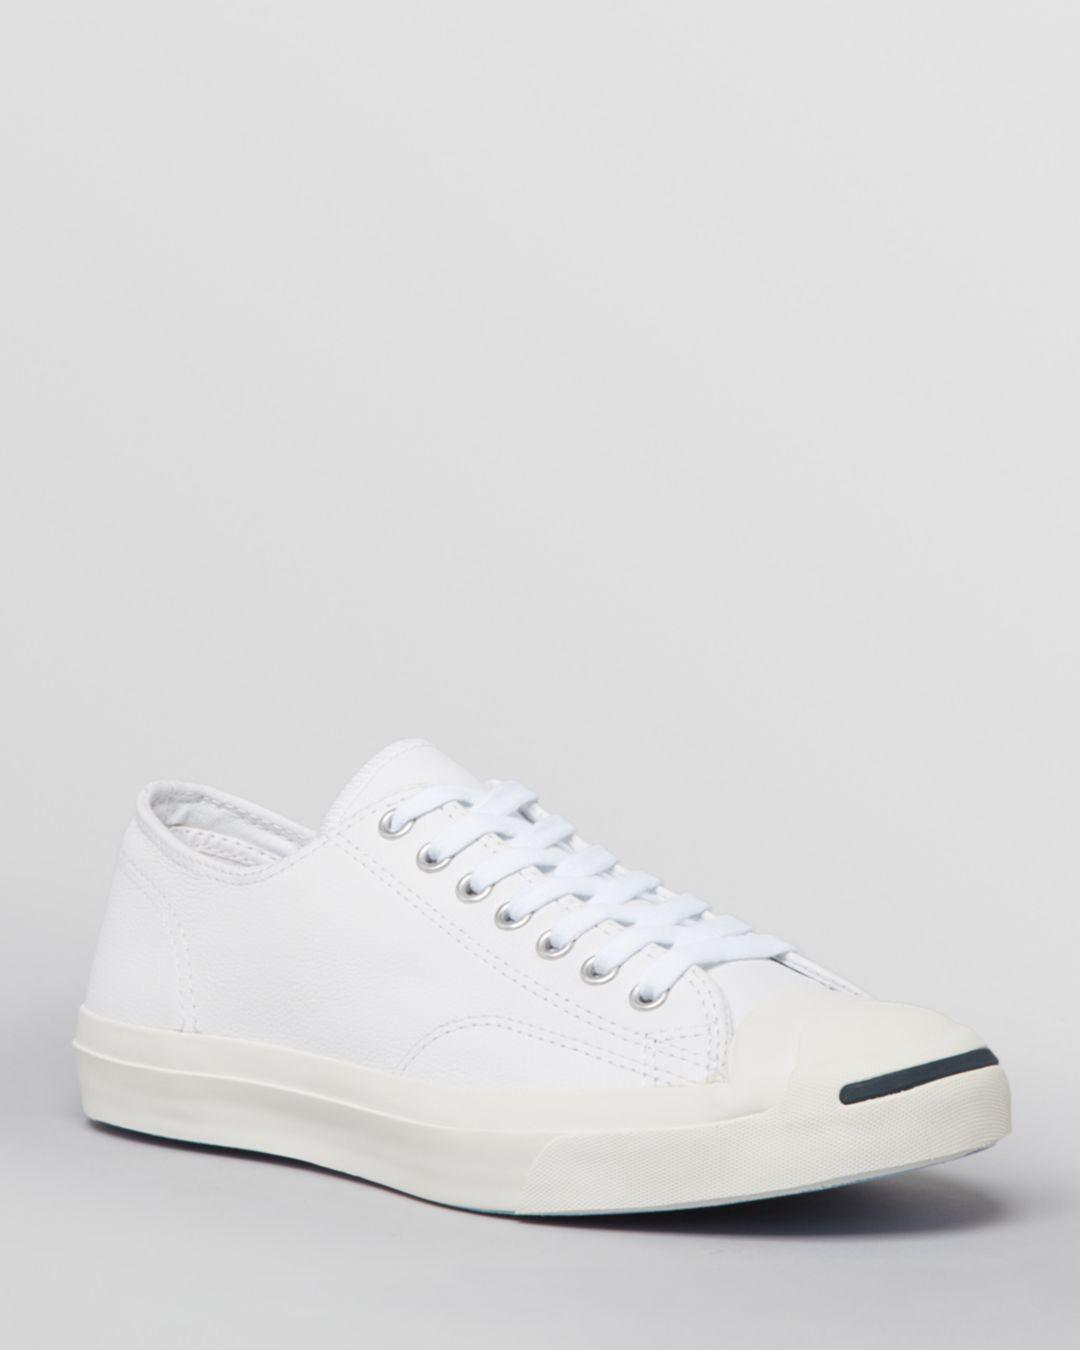 027d82c446f5ee Lyst - Converse Men s Jack Purcell Leather Lace Up Sneakers in White ...